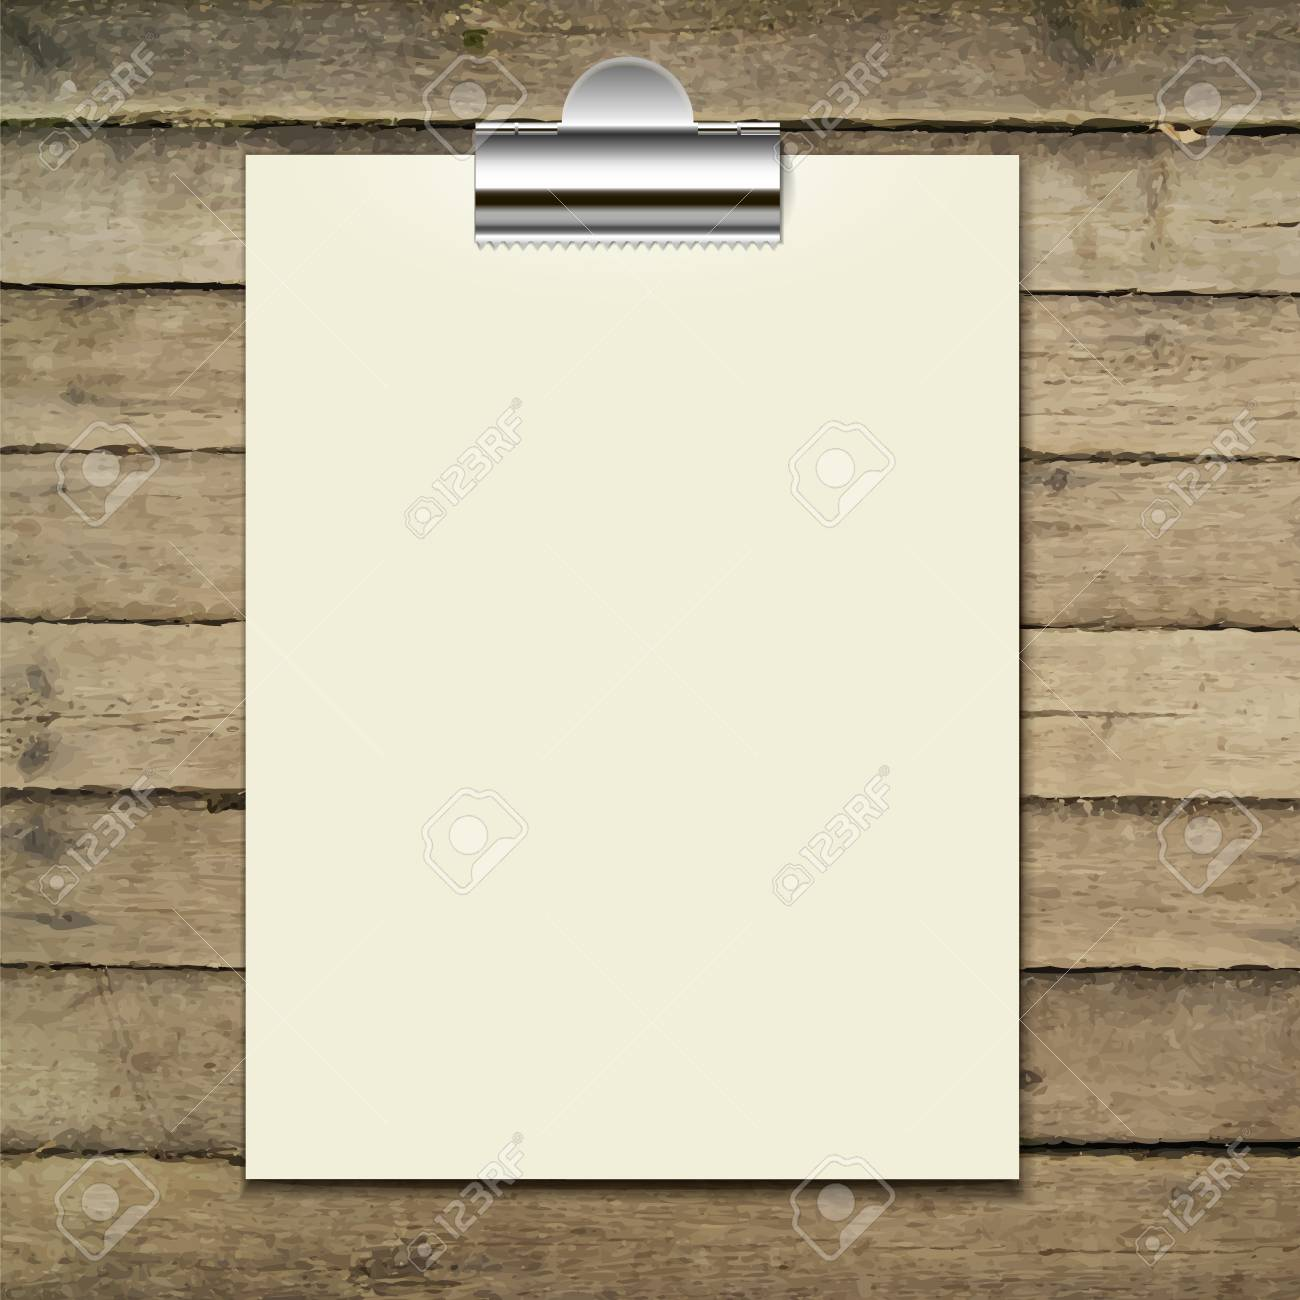 vector template of a paper sheet poster picture frame on the